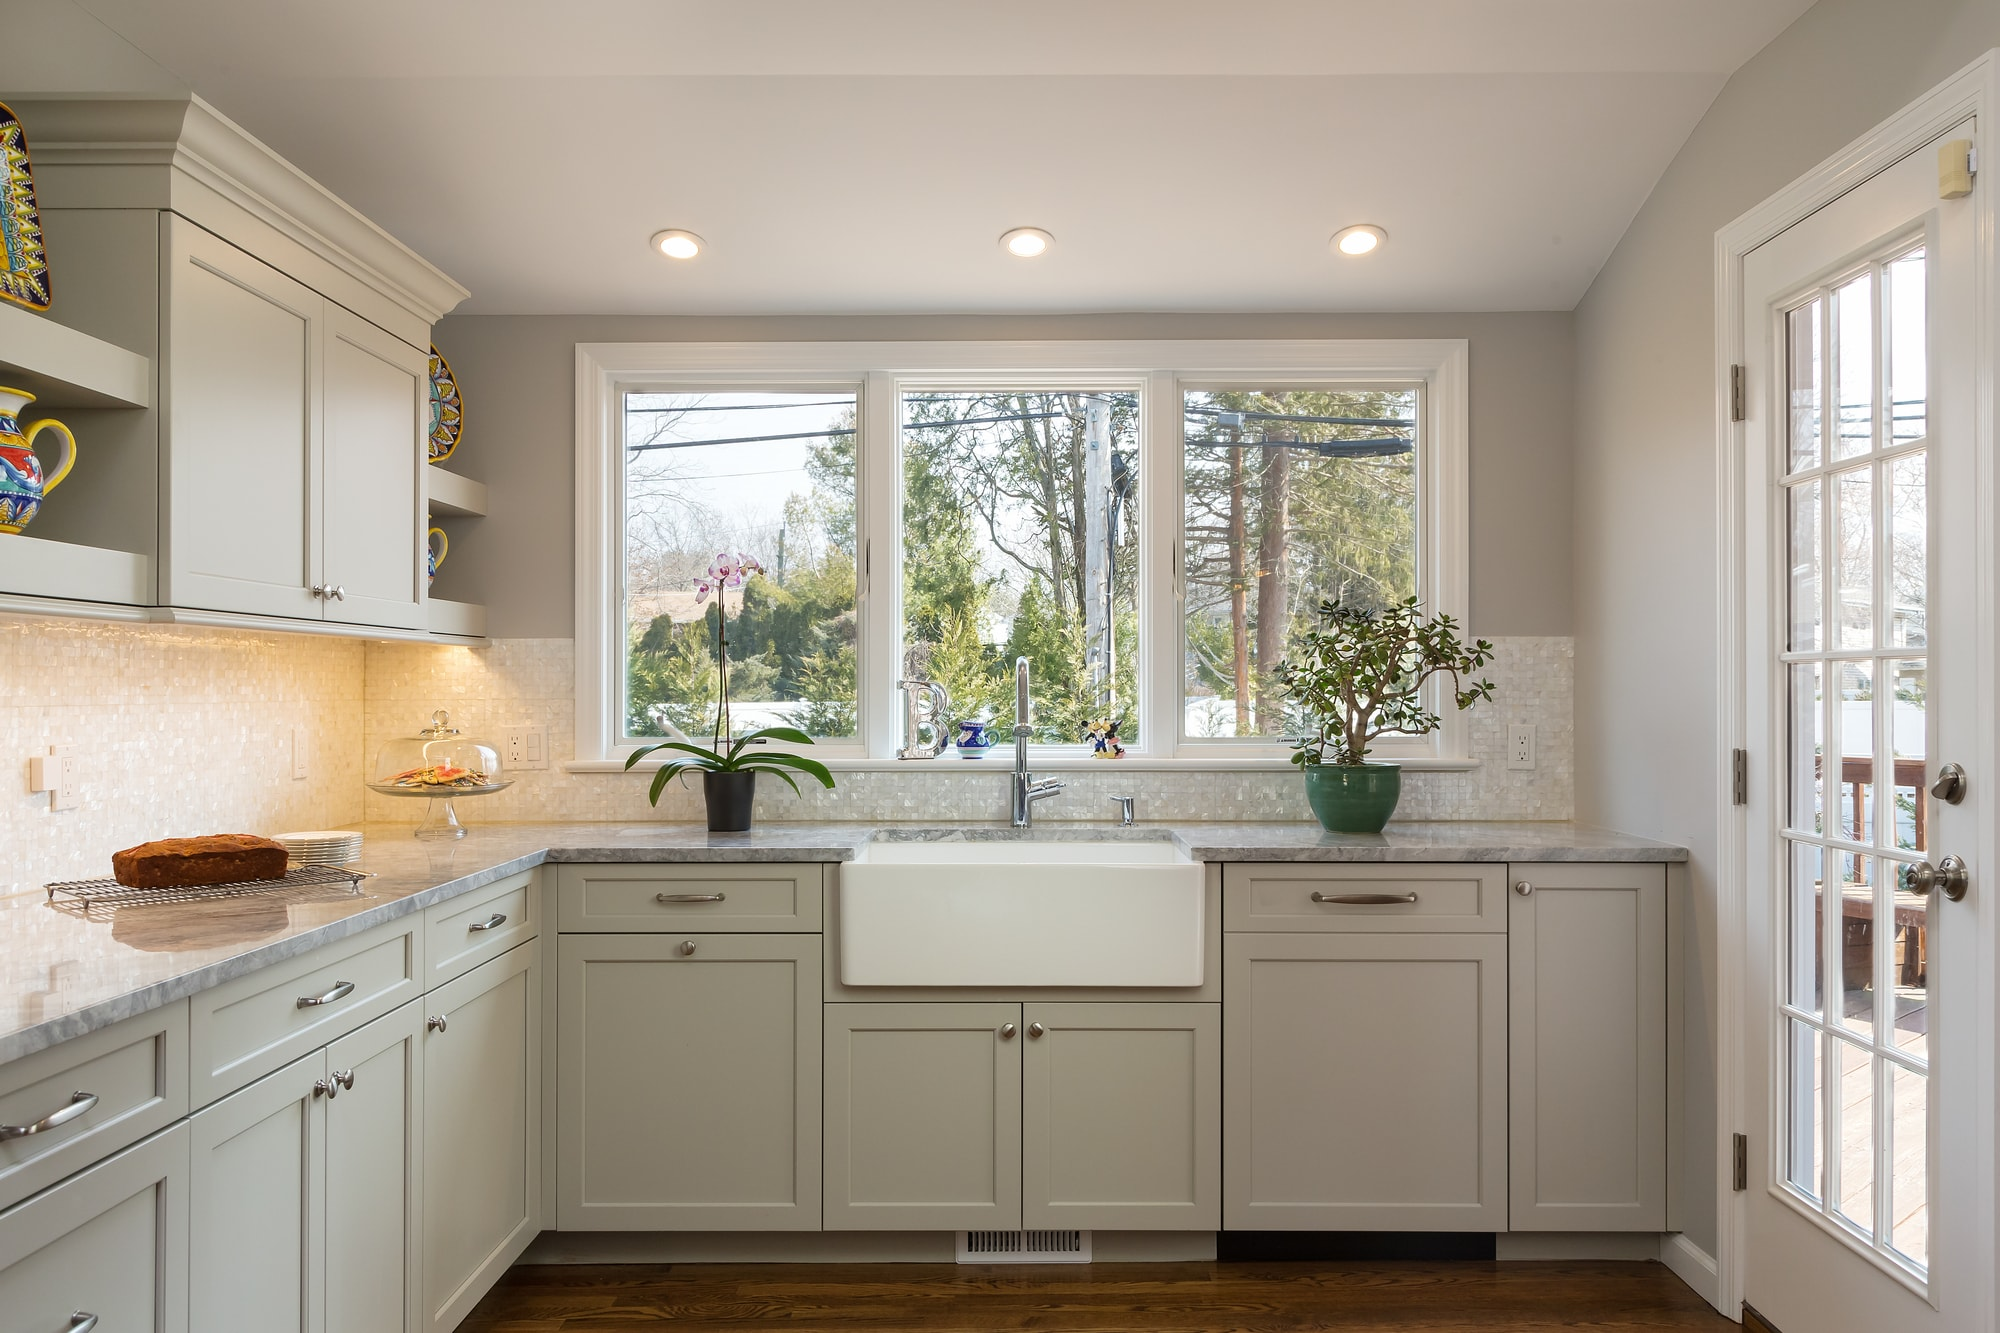 Transitional style kitchen with L-shaped kitchen counter